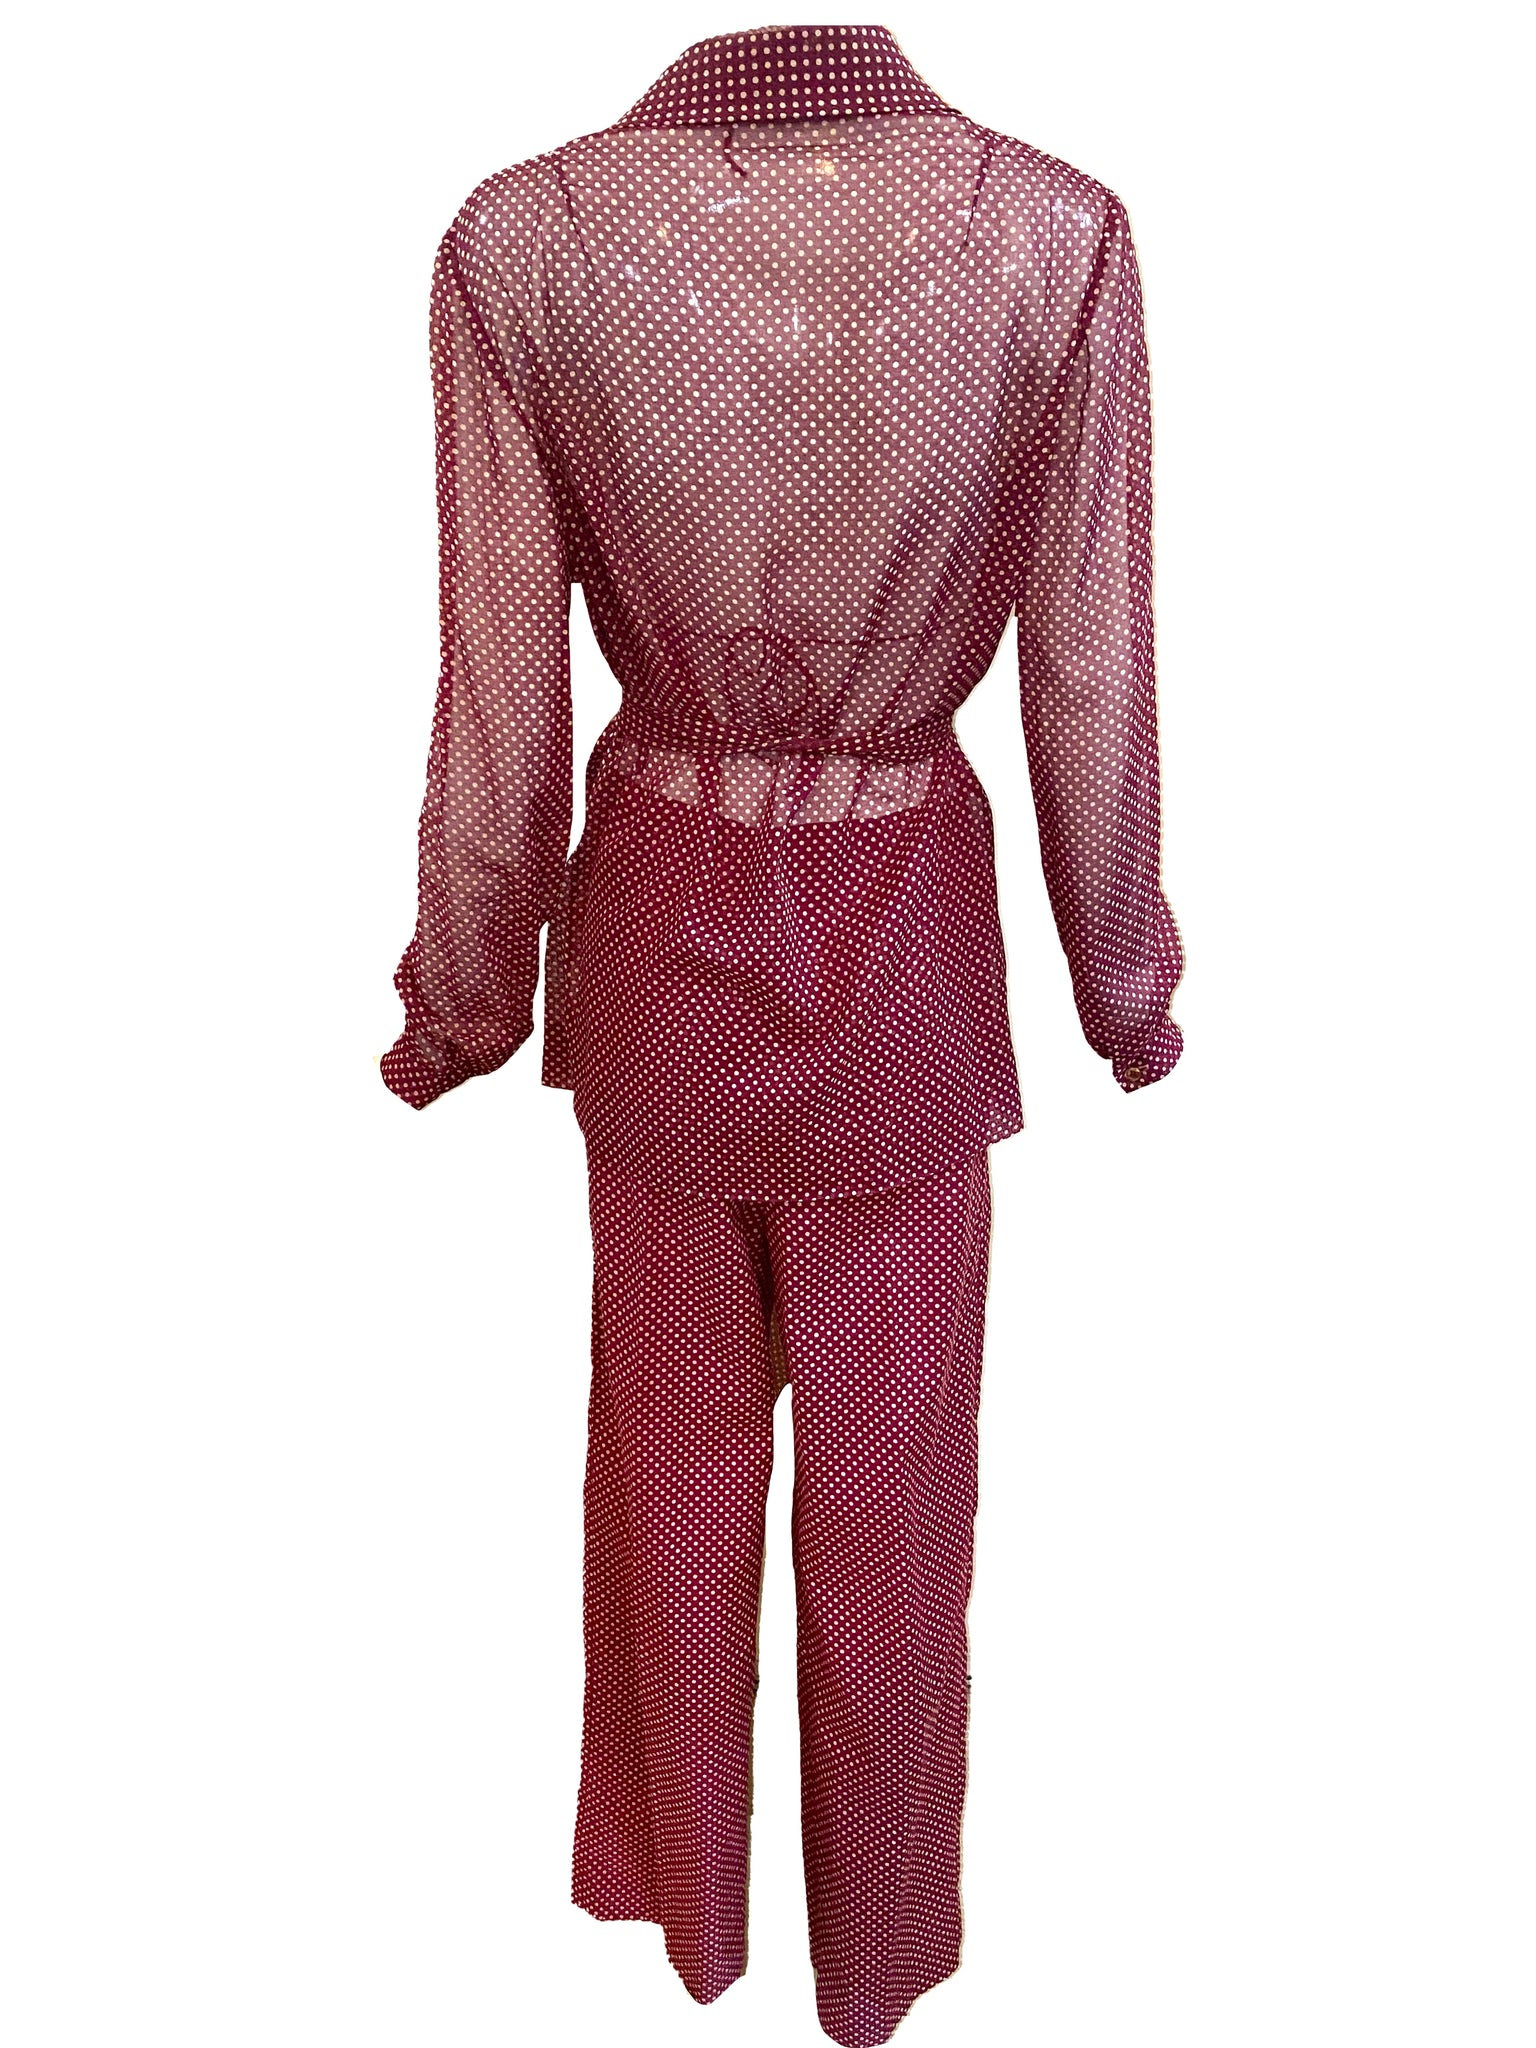 Halston 3 Piece Burgundy Polka Dot Beach Pajamas BACK 3 of 6